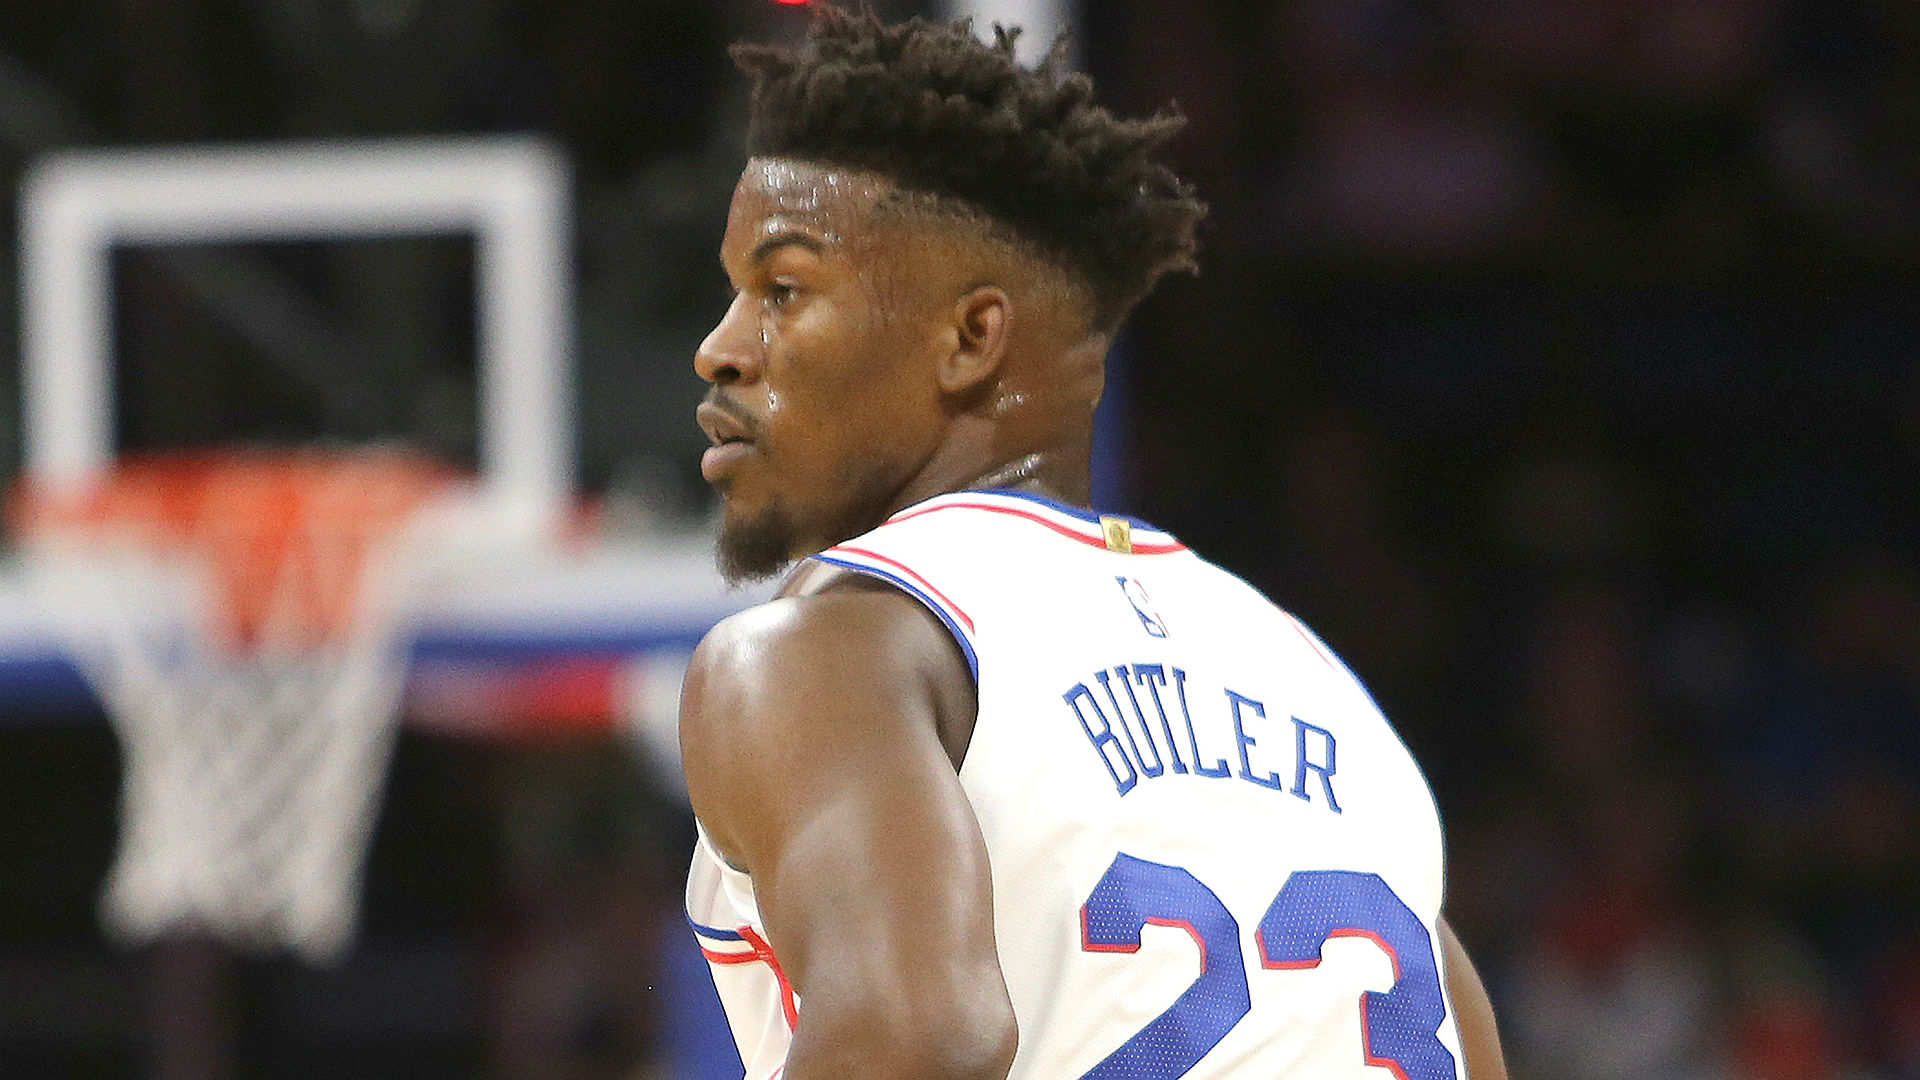 Butler scores 38 points for 76ers